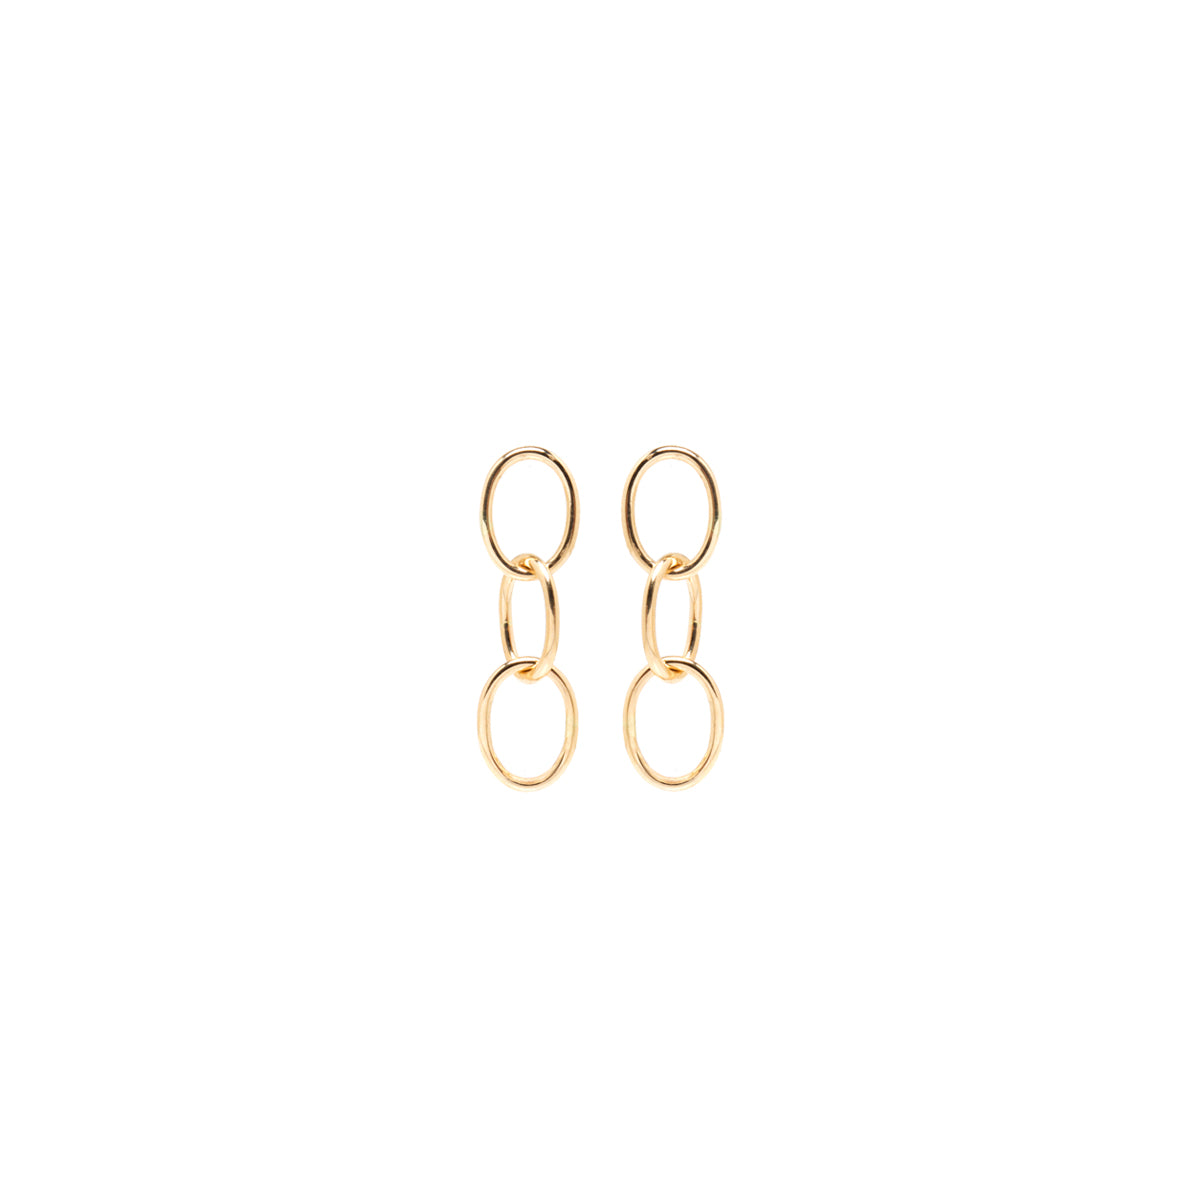 Zoë Chicco 14kt Yellow Gold 3 Chain Link Earrings